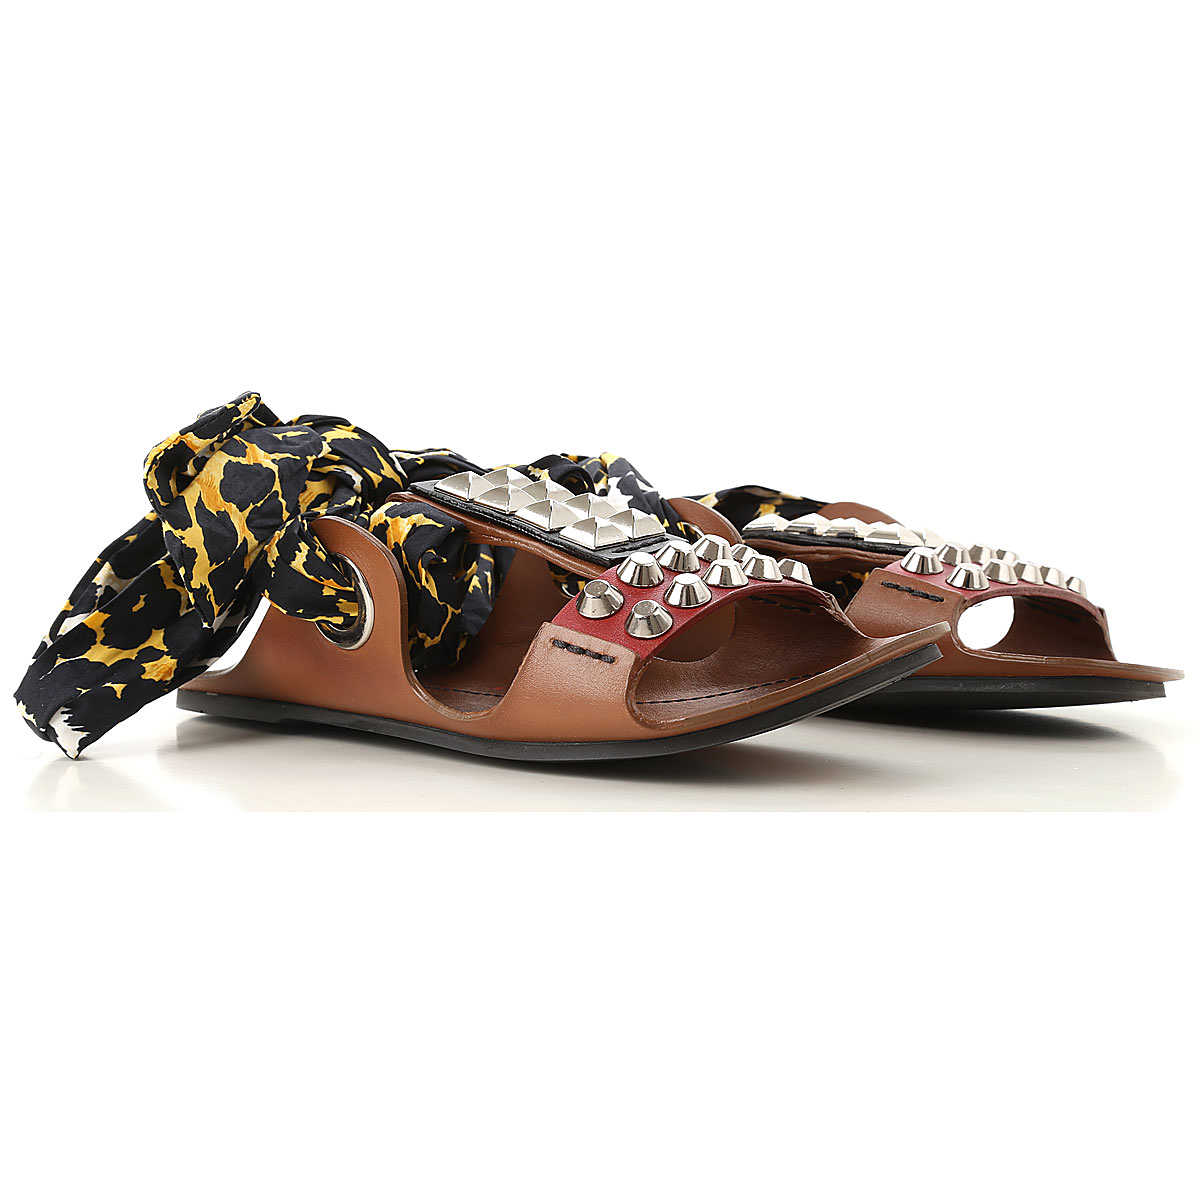 Prada Sandals for Women On Sale in Outlet nut DK - GOOFASH - Womens SANDALS